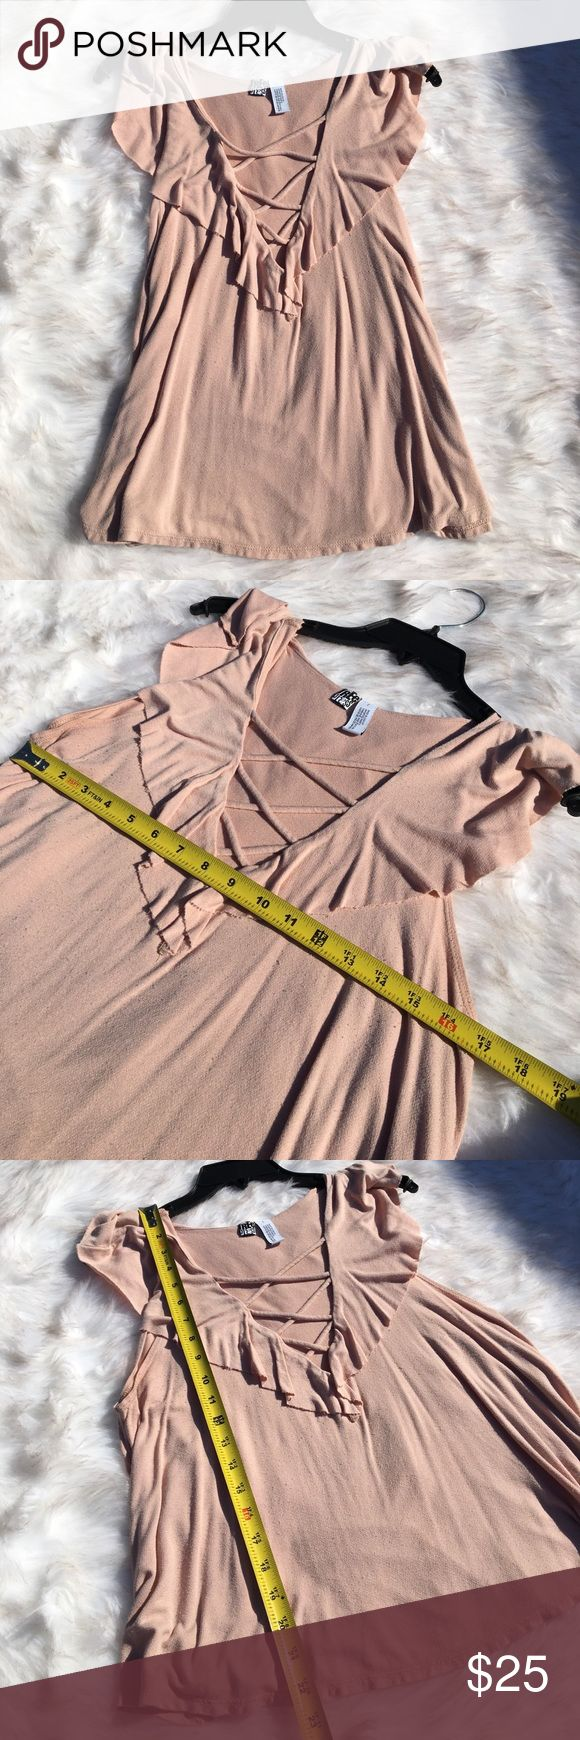 ✨BEST OFFER✨ Sexy Laced Blouse Used. Good Condition. No stains, or tears. Slight wear due to washer. Otherwise, good condition. Purchased at Nordstrom. Very sexy ruffled blouse with lace design over cleavage. Please check measurements prior to purchase 🚫 NO TRADES 🚫 Nordstrom Tops Blouses